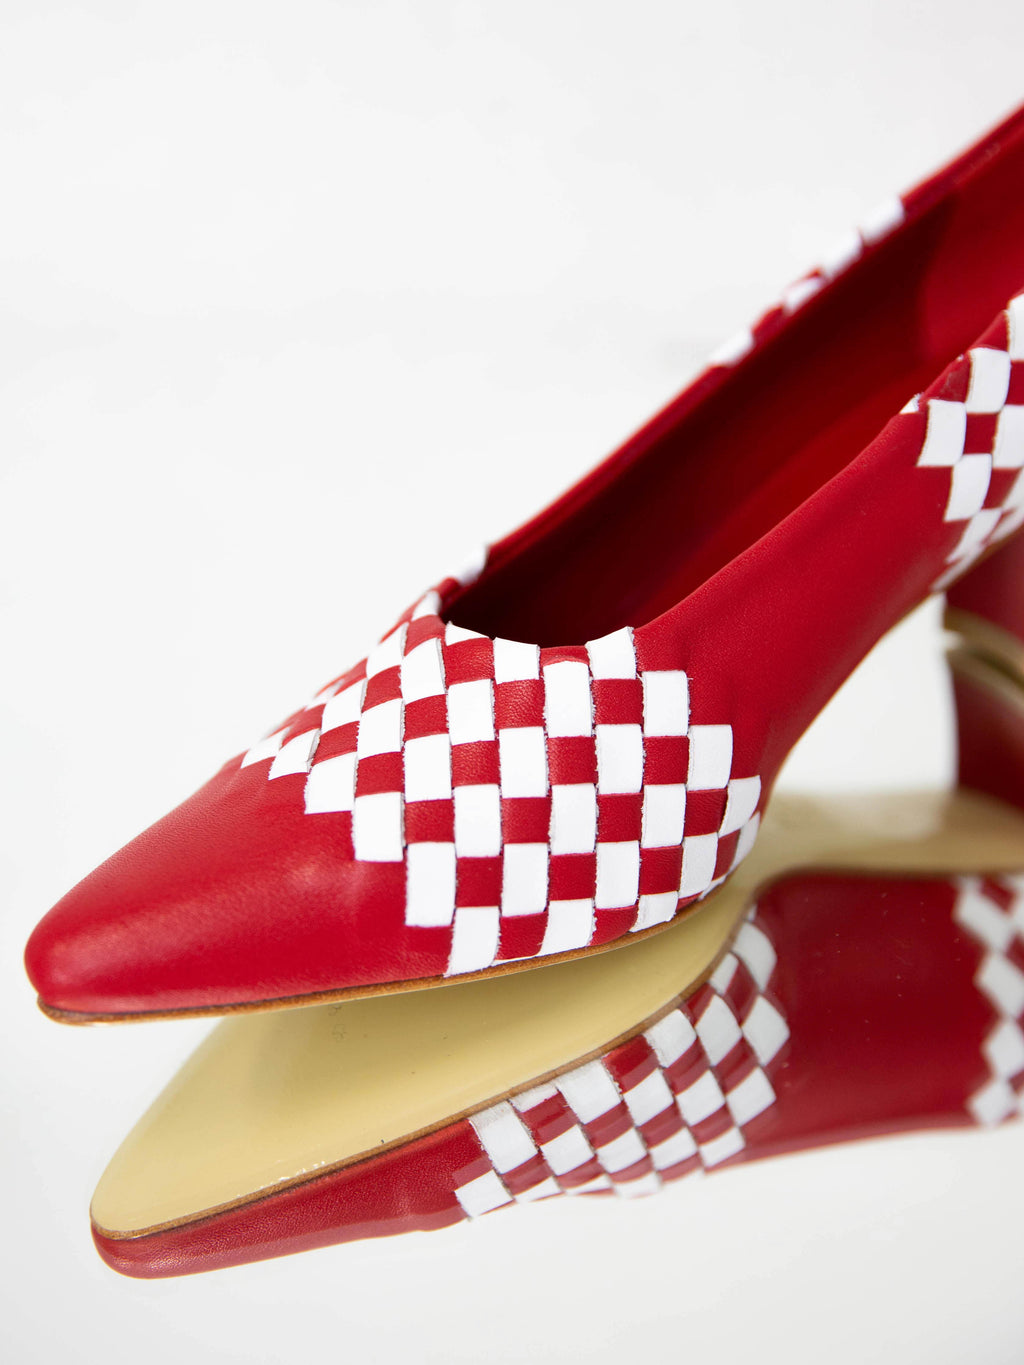 Ruby Basketweave Pump - Red and White